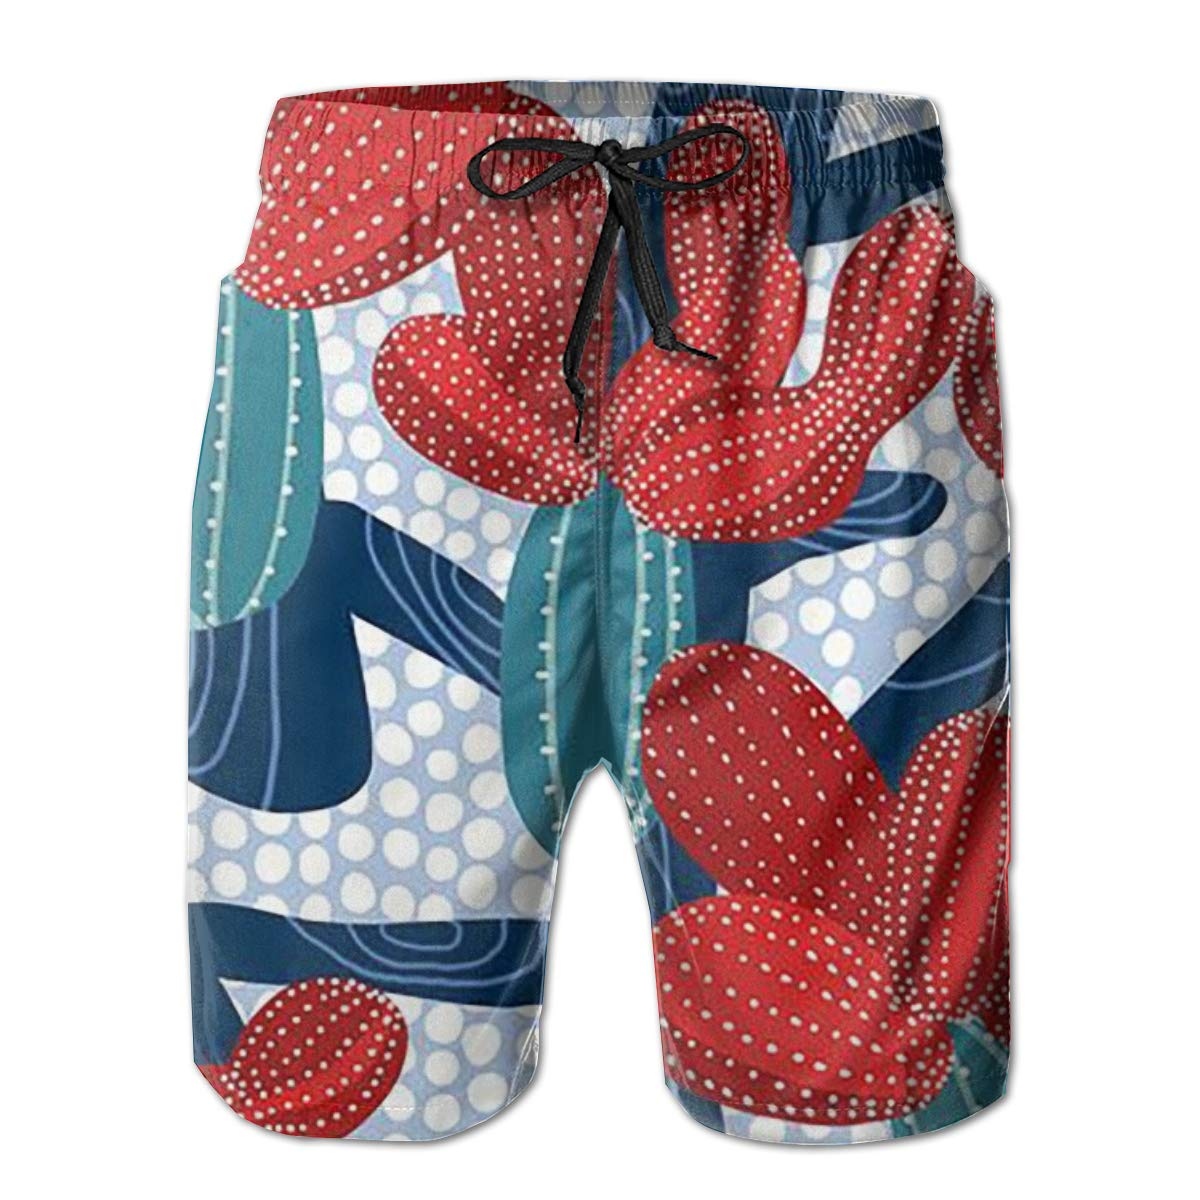 ZORITO Mens Swim Trunks Quick Dry Summer Holiday Beach Shorts with Mesh Lining Winter Cactus Beachwear